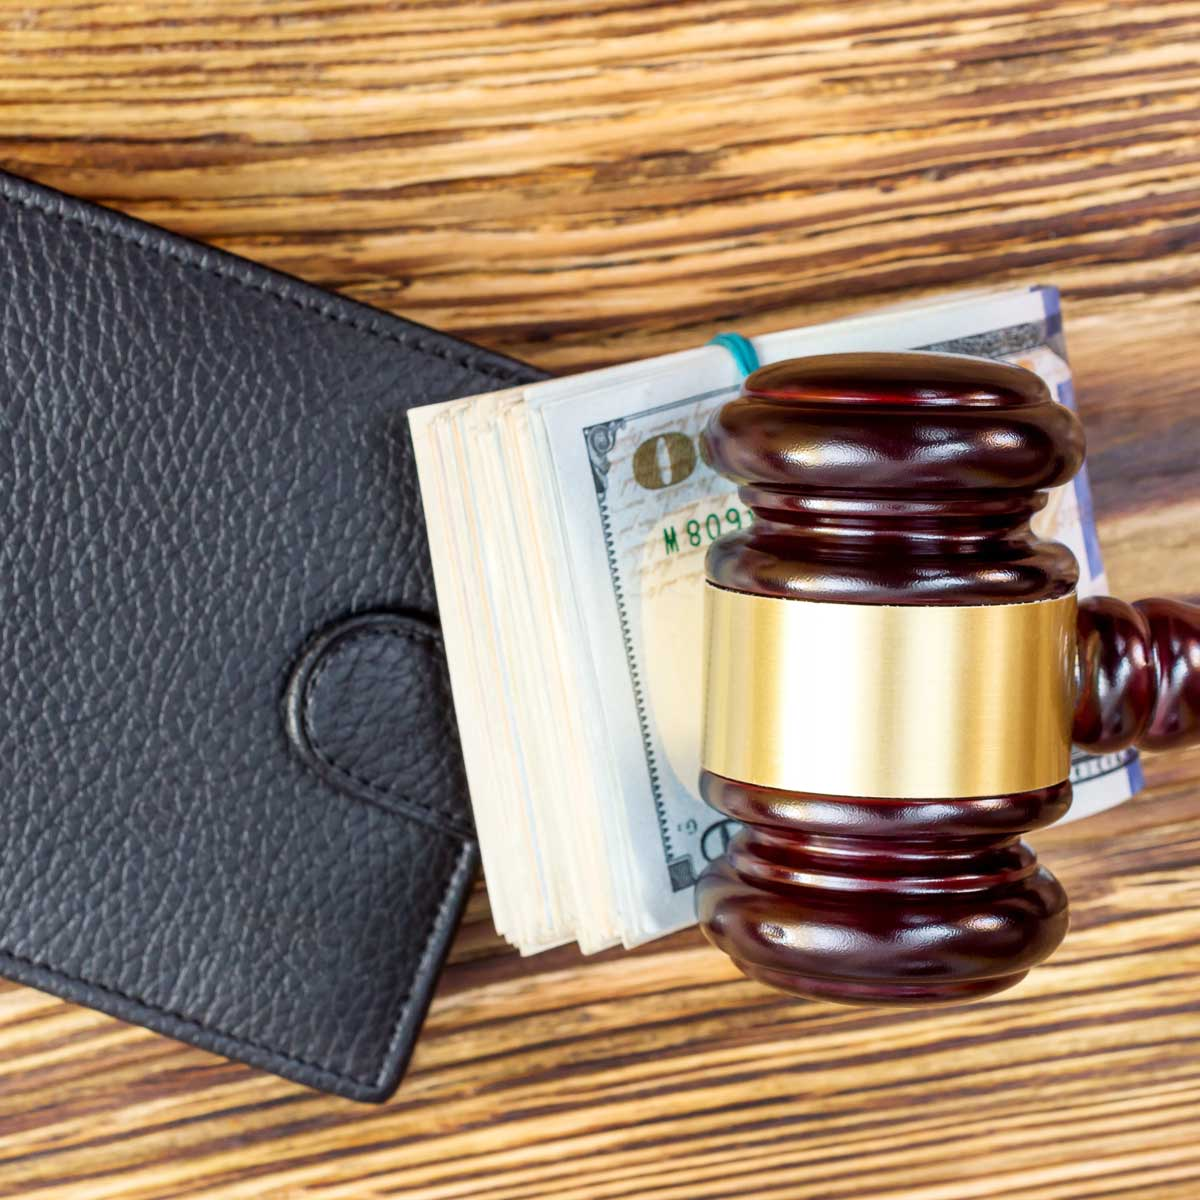 A gavel on a stack of cash on a wallet